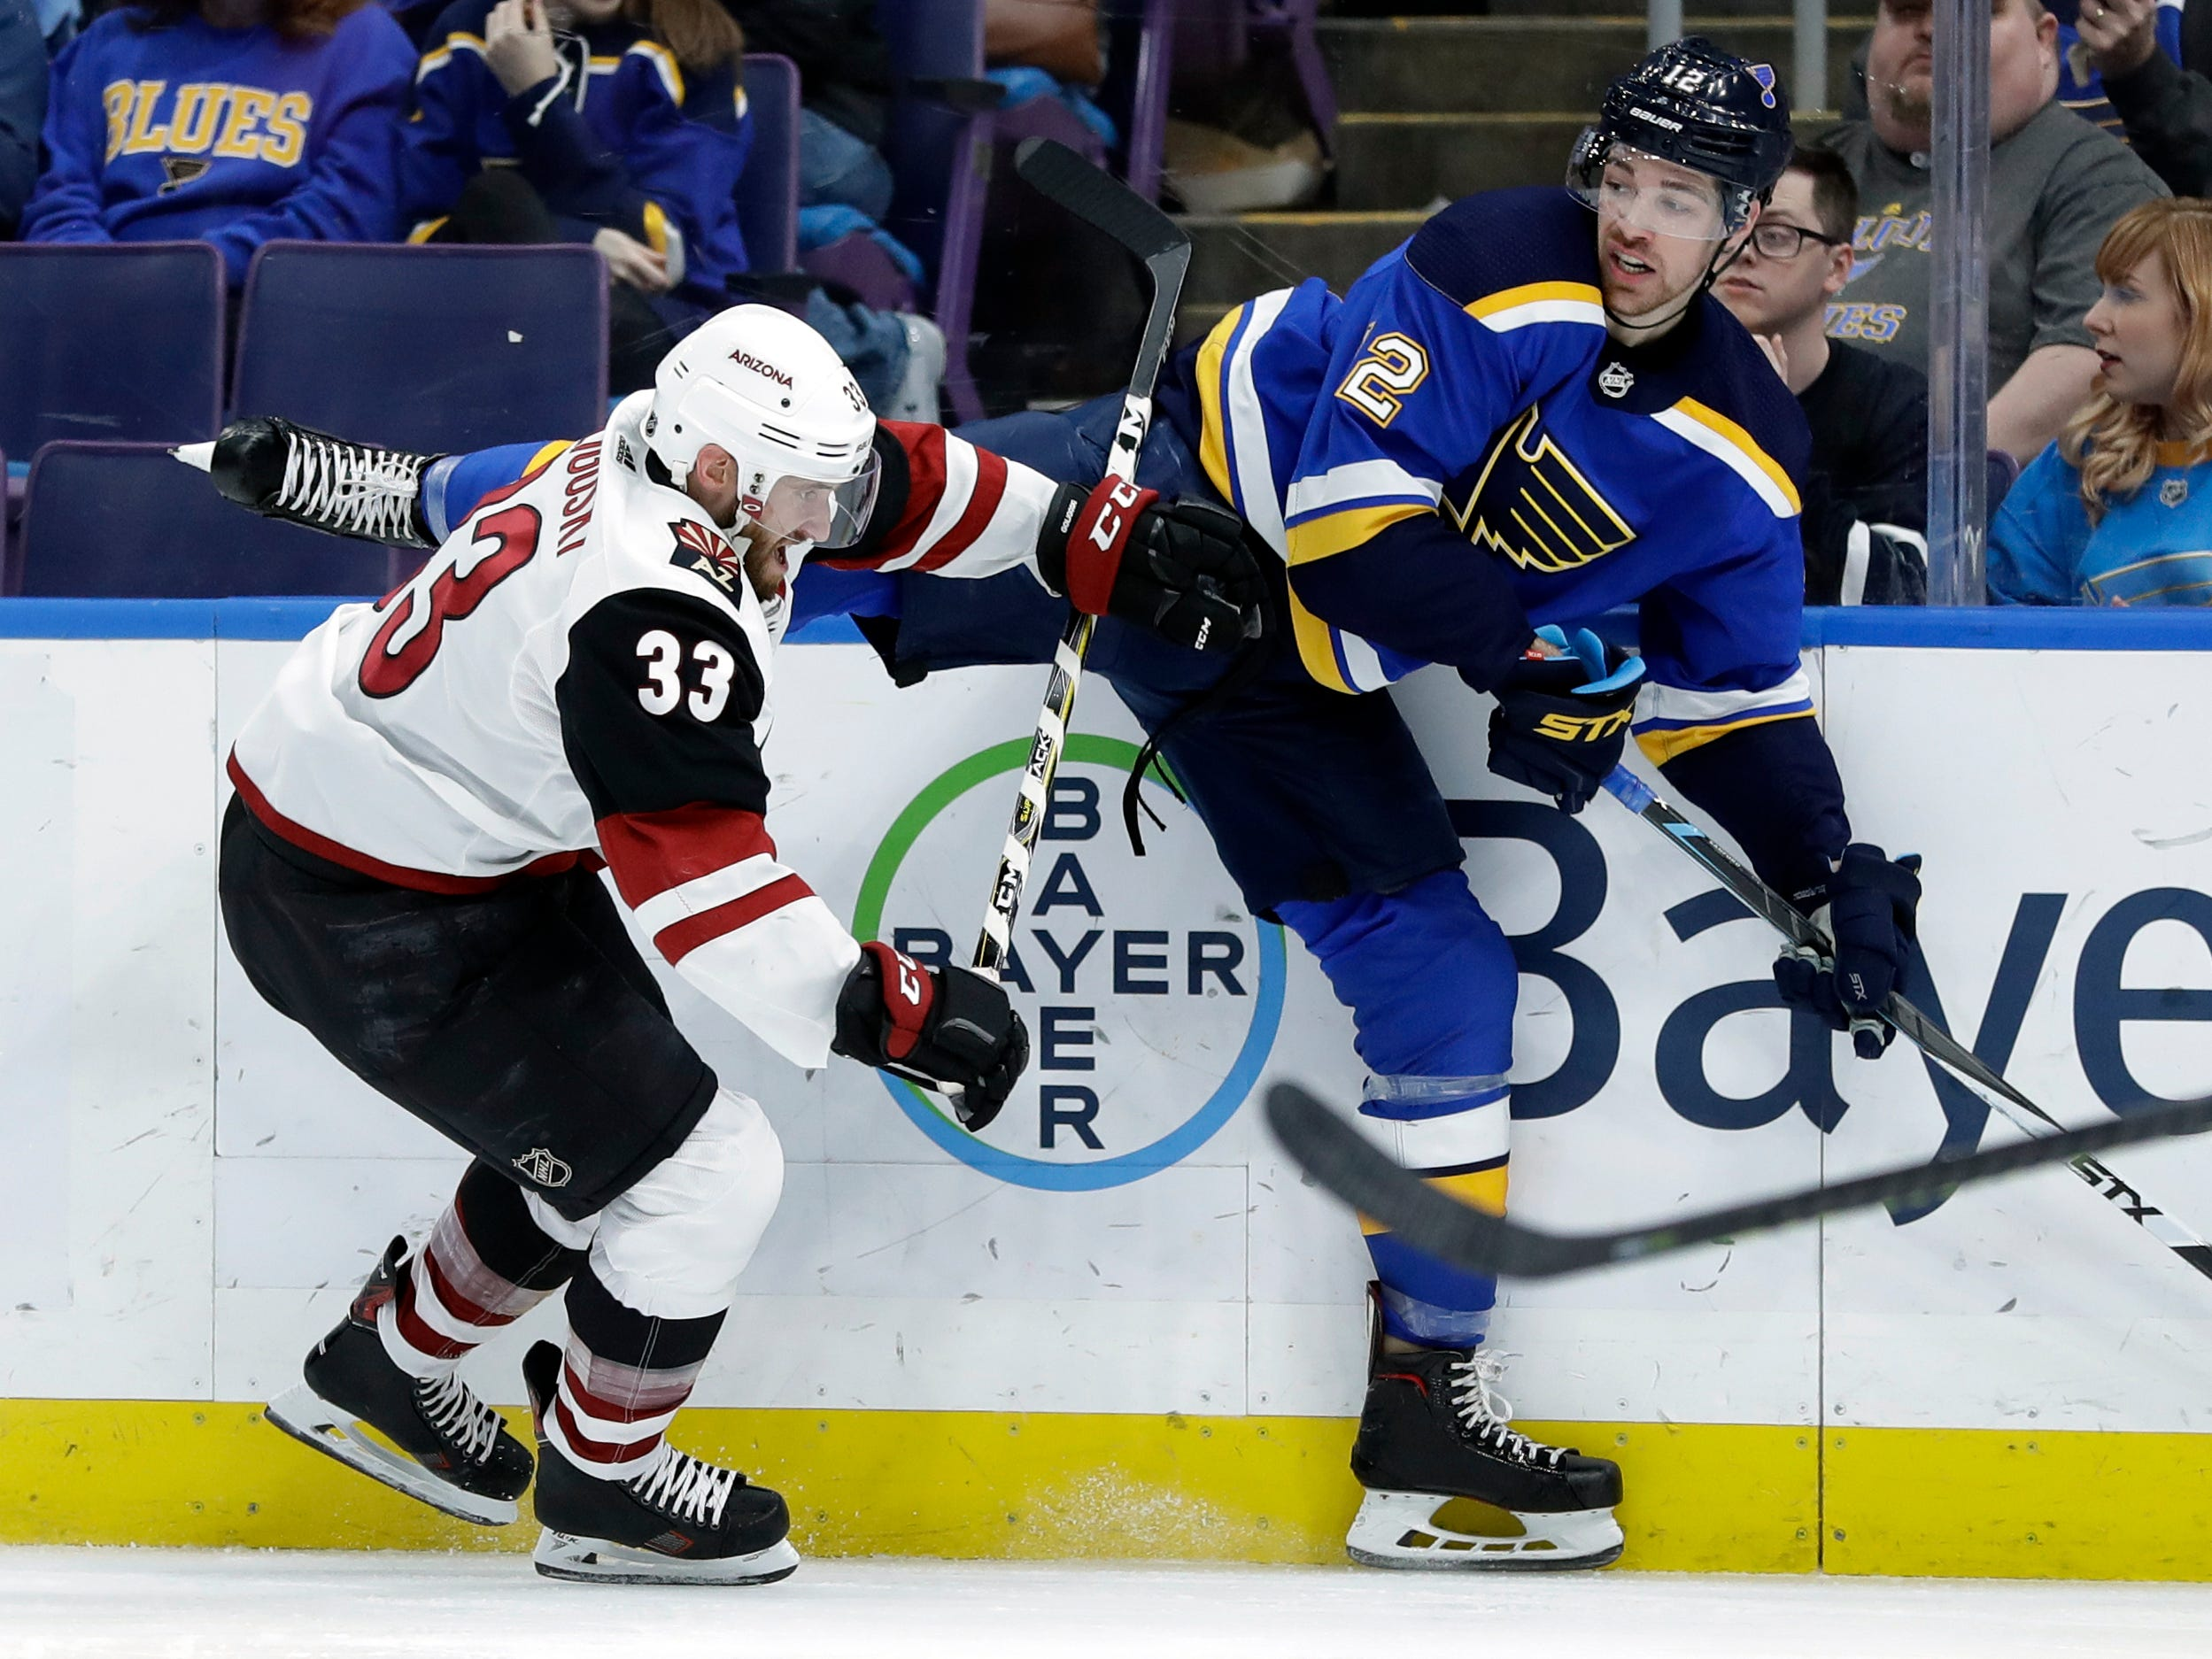 St. Louis Blues' Zach Sanford, right, gets tangled up with Arizona Coyotes' Alex Goligoski (33) during the second period of an NHL hockey game, Tuesday, March 12, 2019, in St. Louis.